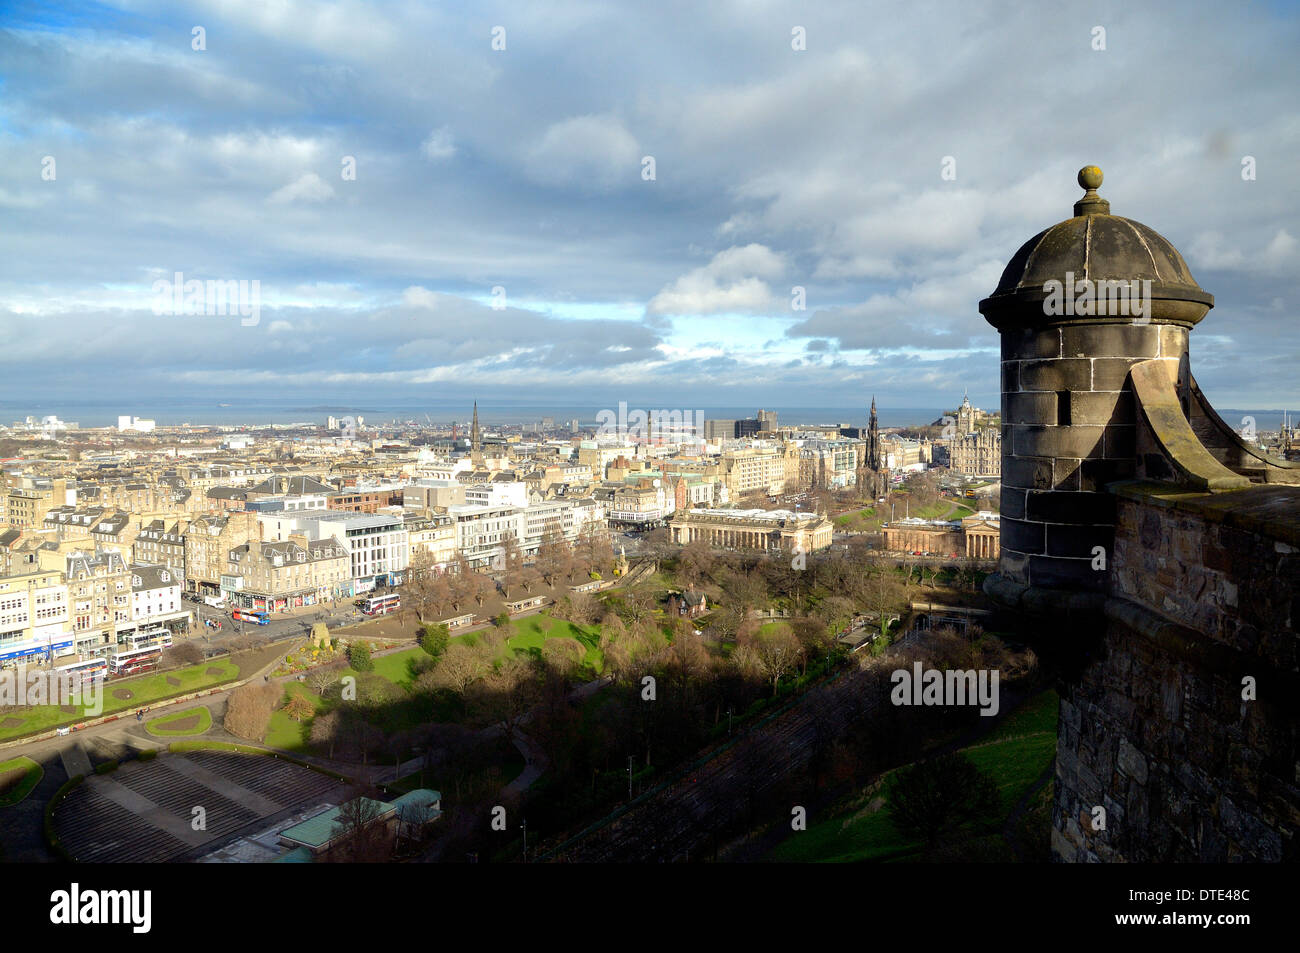 View over the New Town of Edinburgh to the Firth of Forth from Edinburgh Castle, Scotland Stock Photo